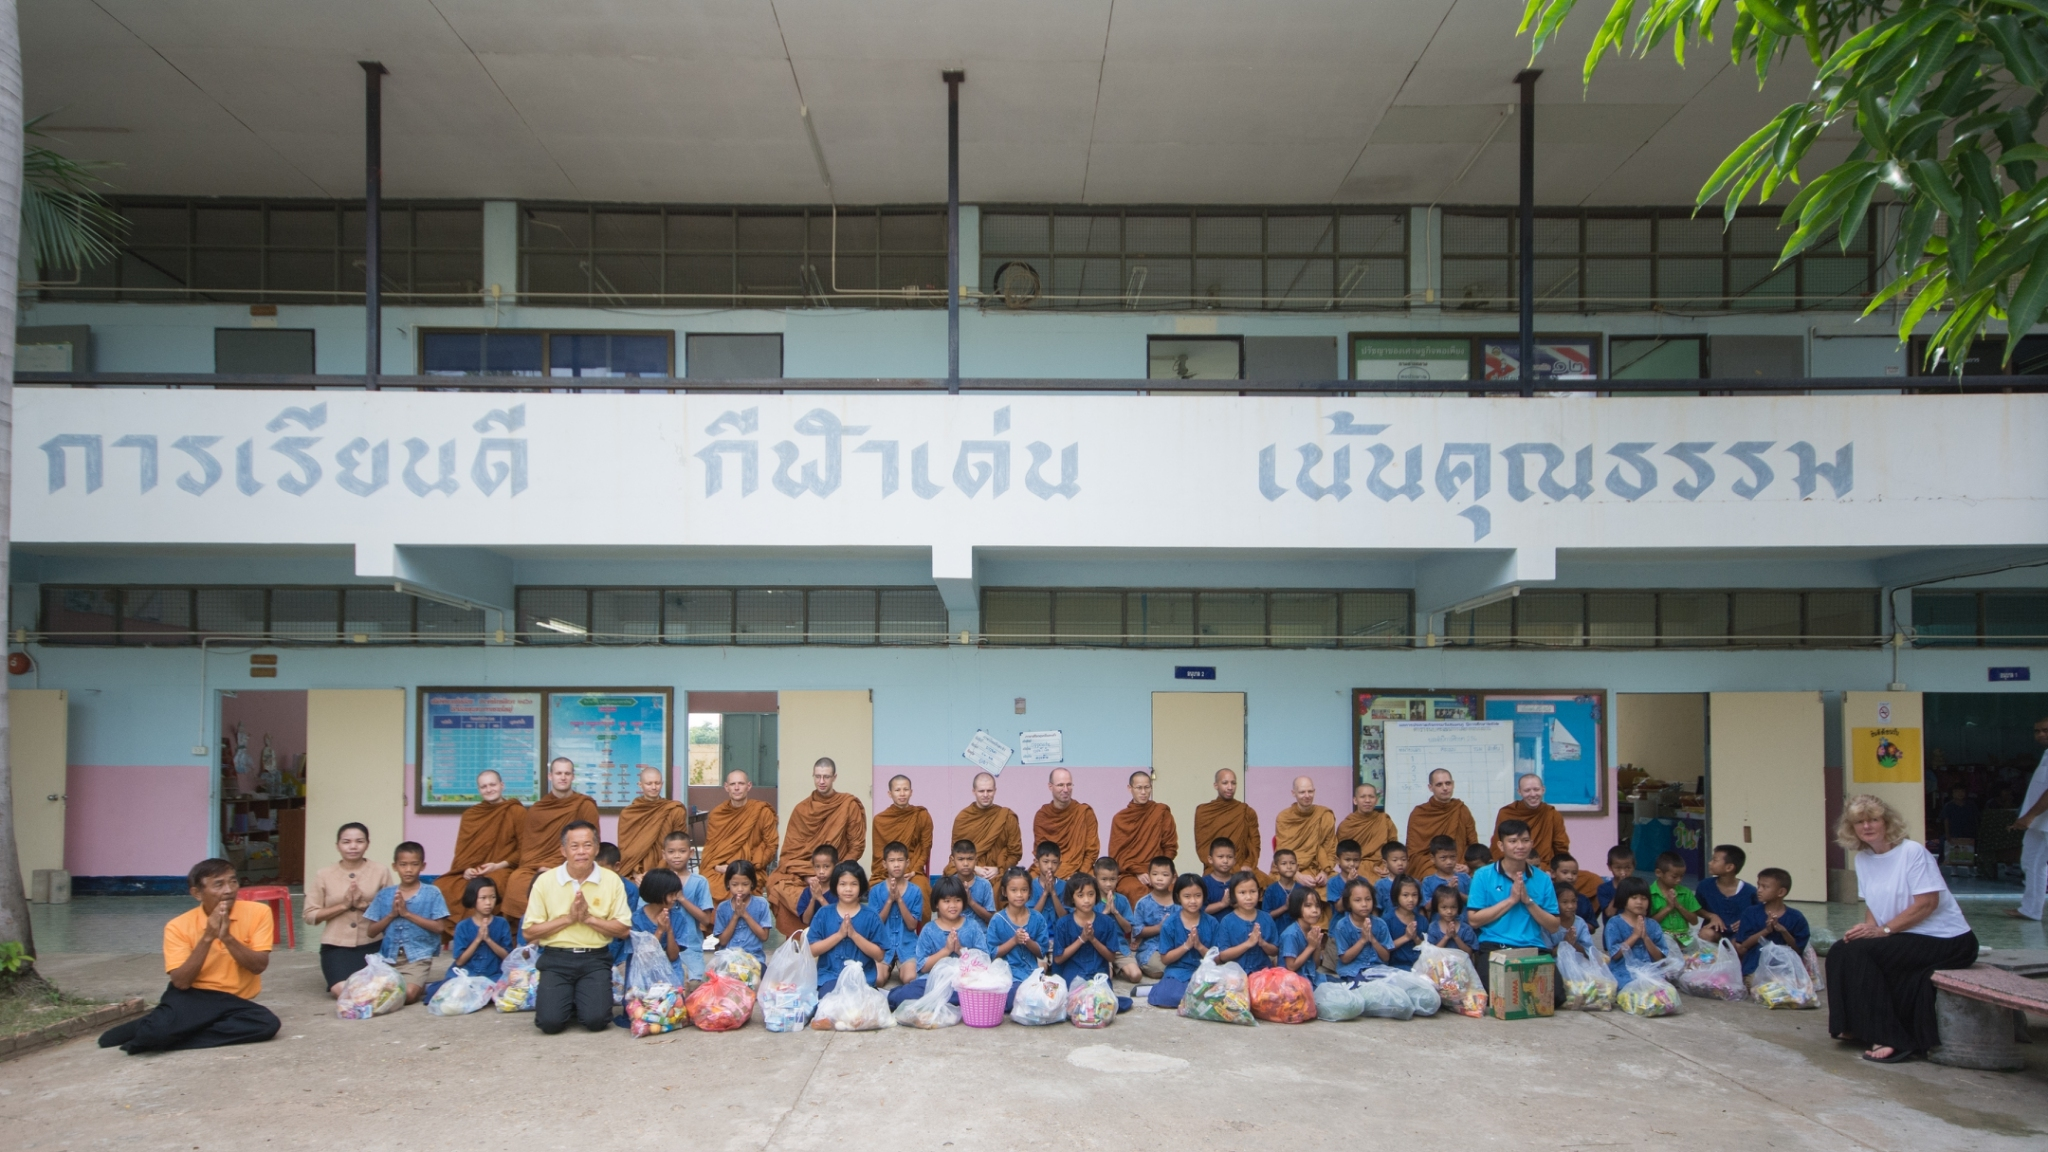 Distributing left over almsfood to a school in Mukdahan